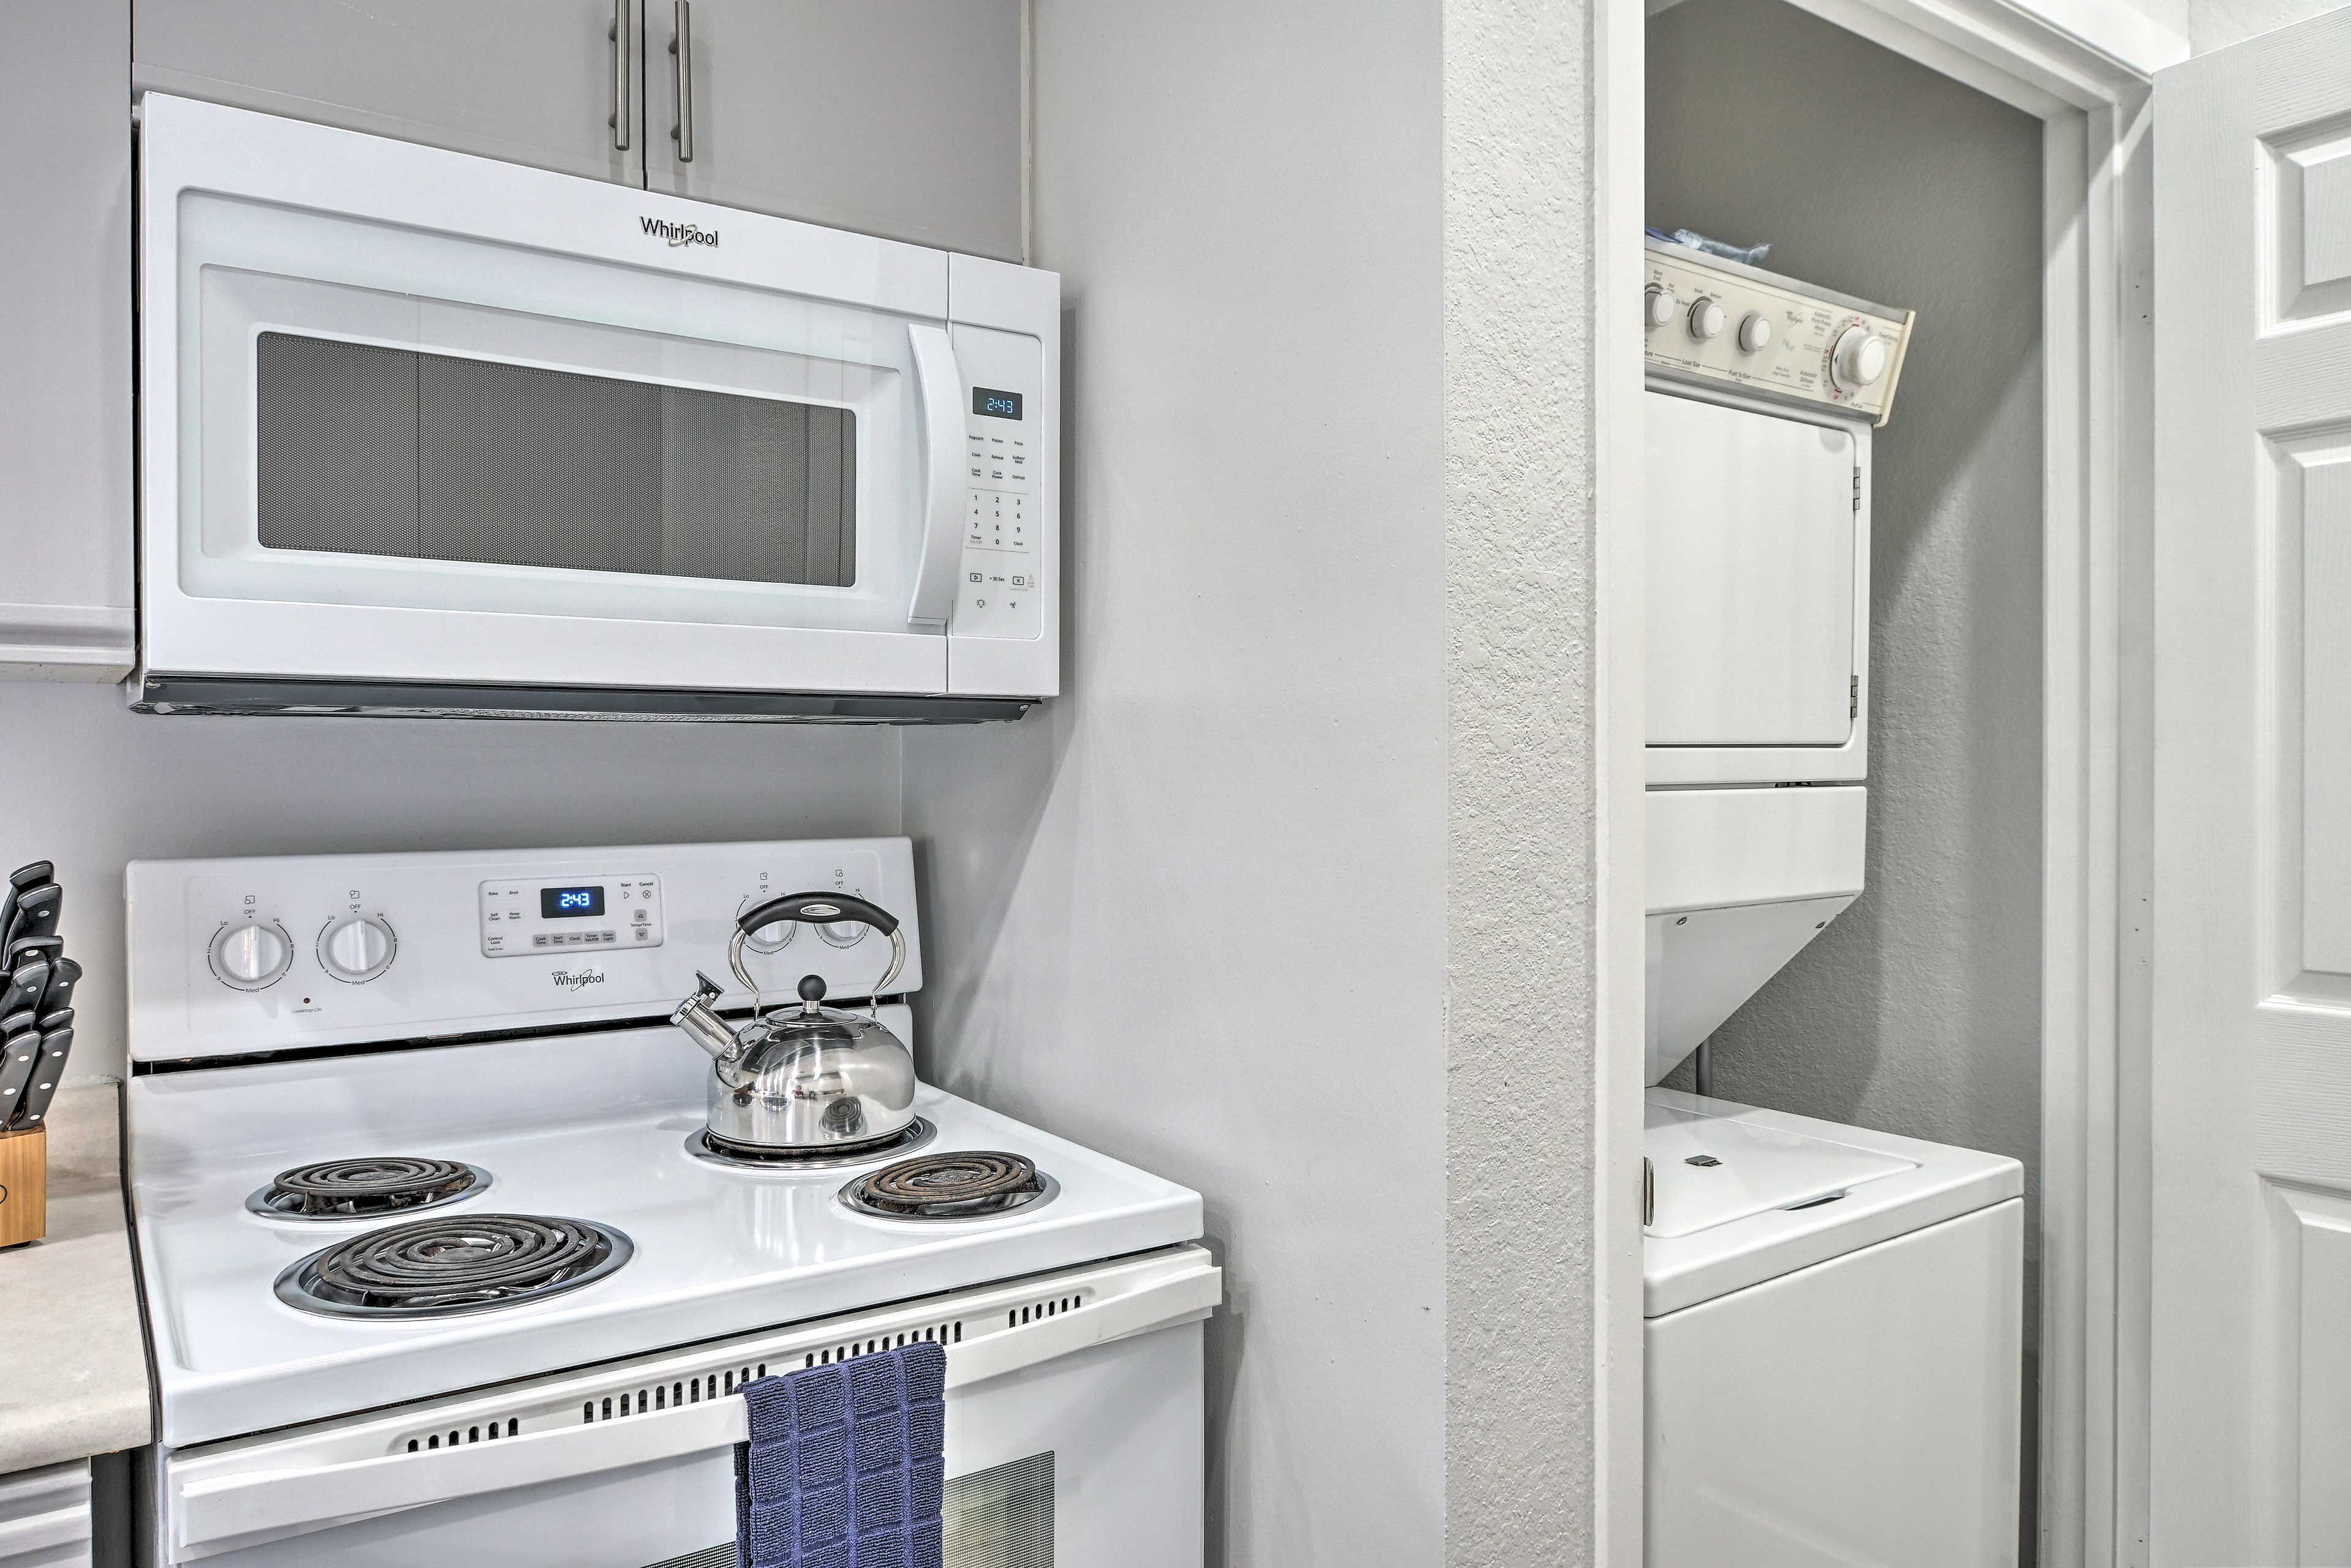 Kitchen/Laundry Nook | Detergent & Dryer Sheets Provided